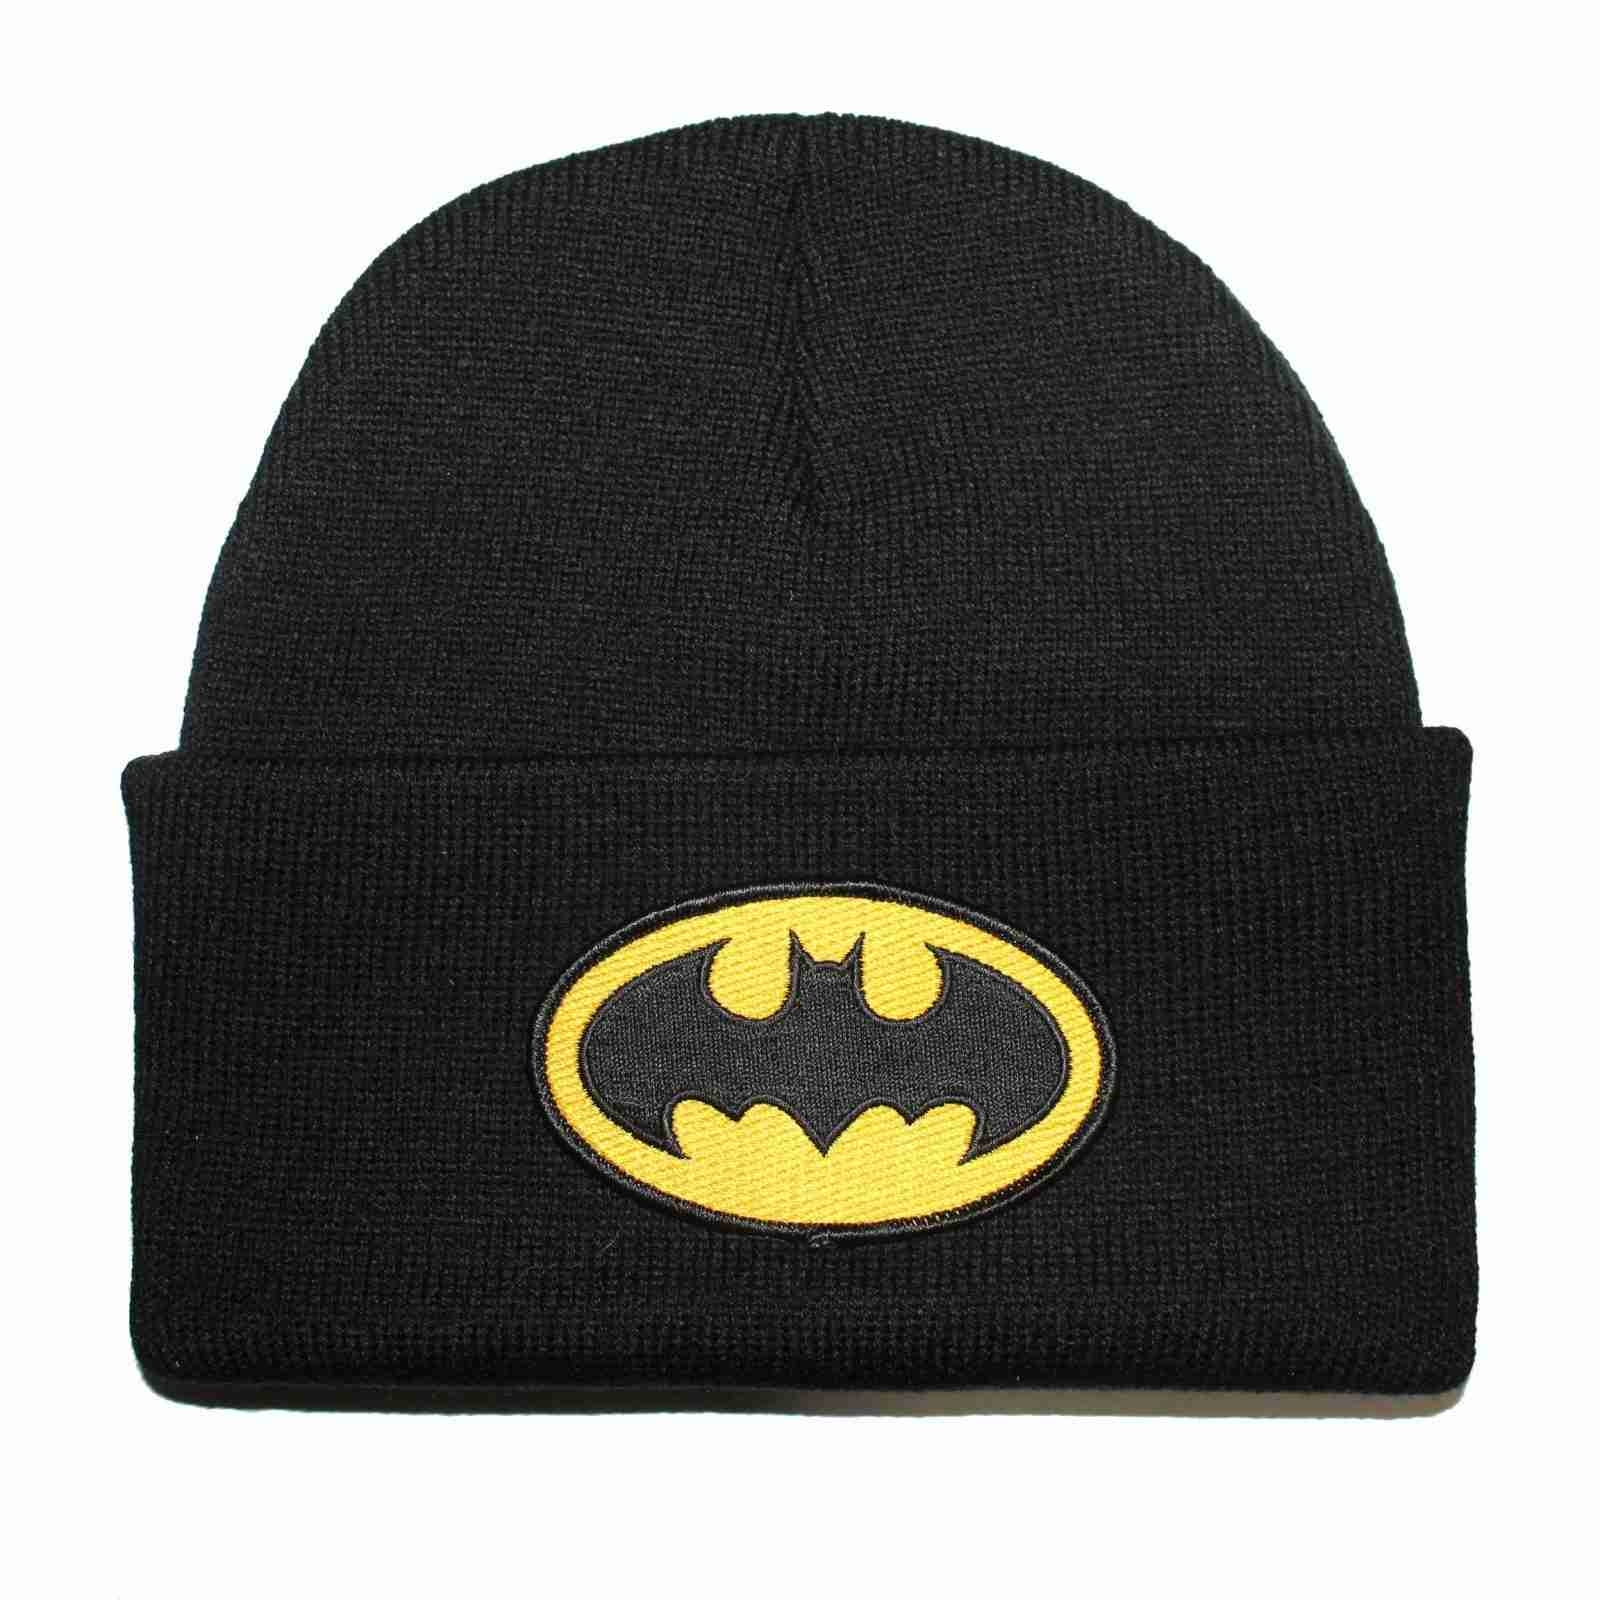 Batman Beanie Cap with Black and yellow traditional Logo a8bcaf0af8a